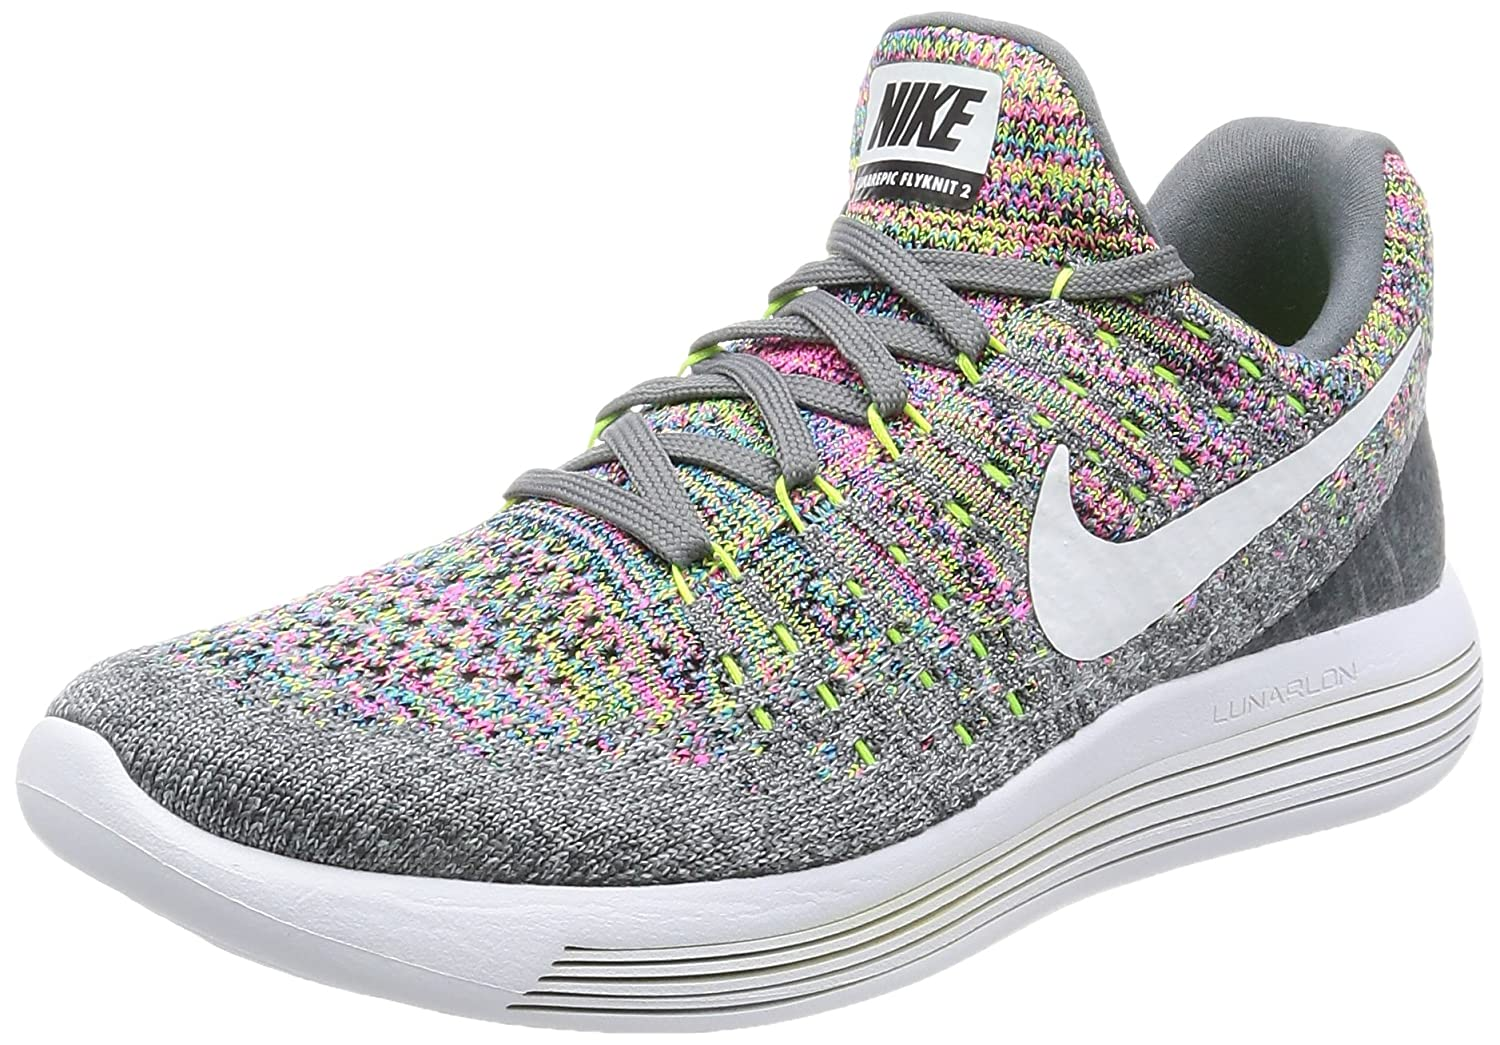 Nike Womens Lunarepic Low Flyknit 2 Fabric Low Top Lace Up, Grey, Size 6.0